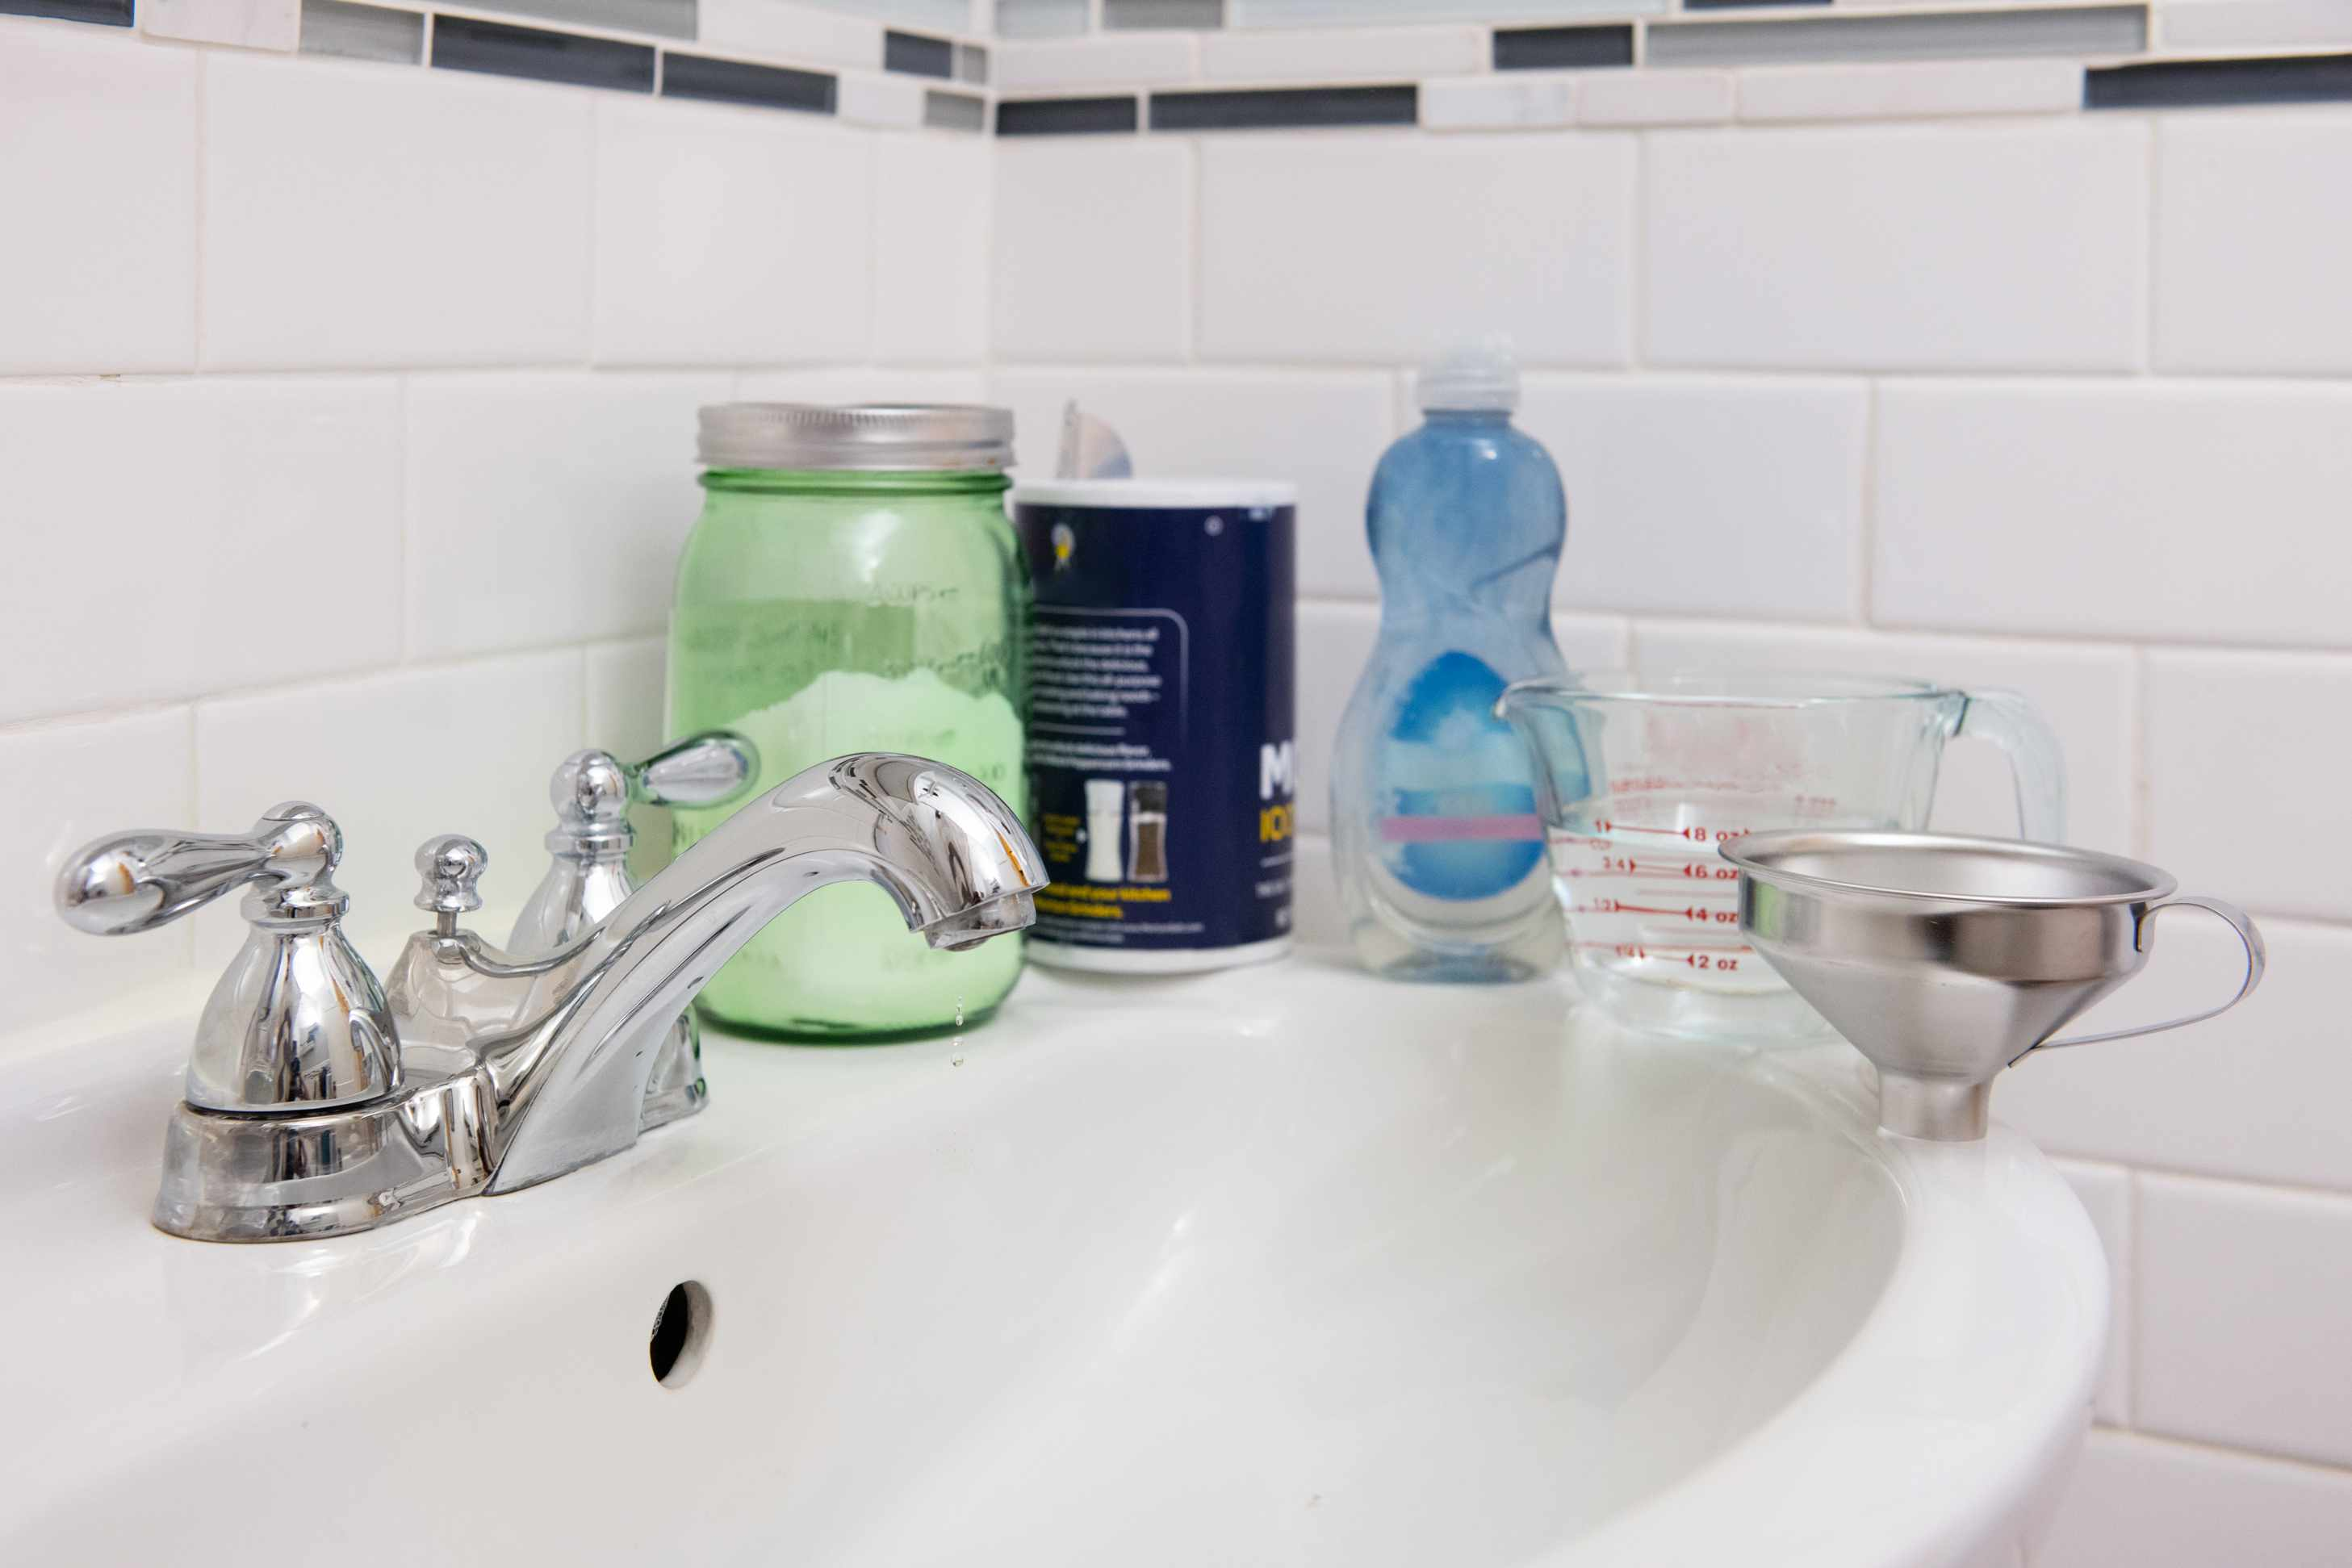 How To Clean A Clogged Drain With Baking Soda